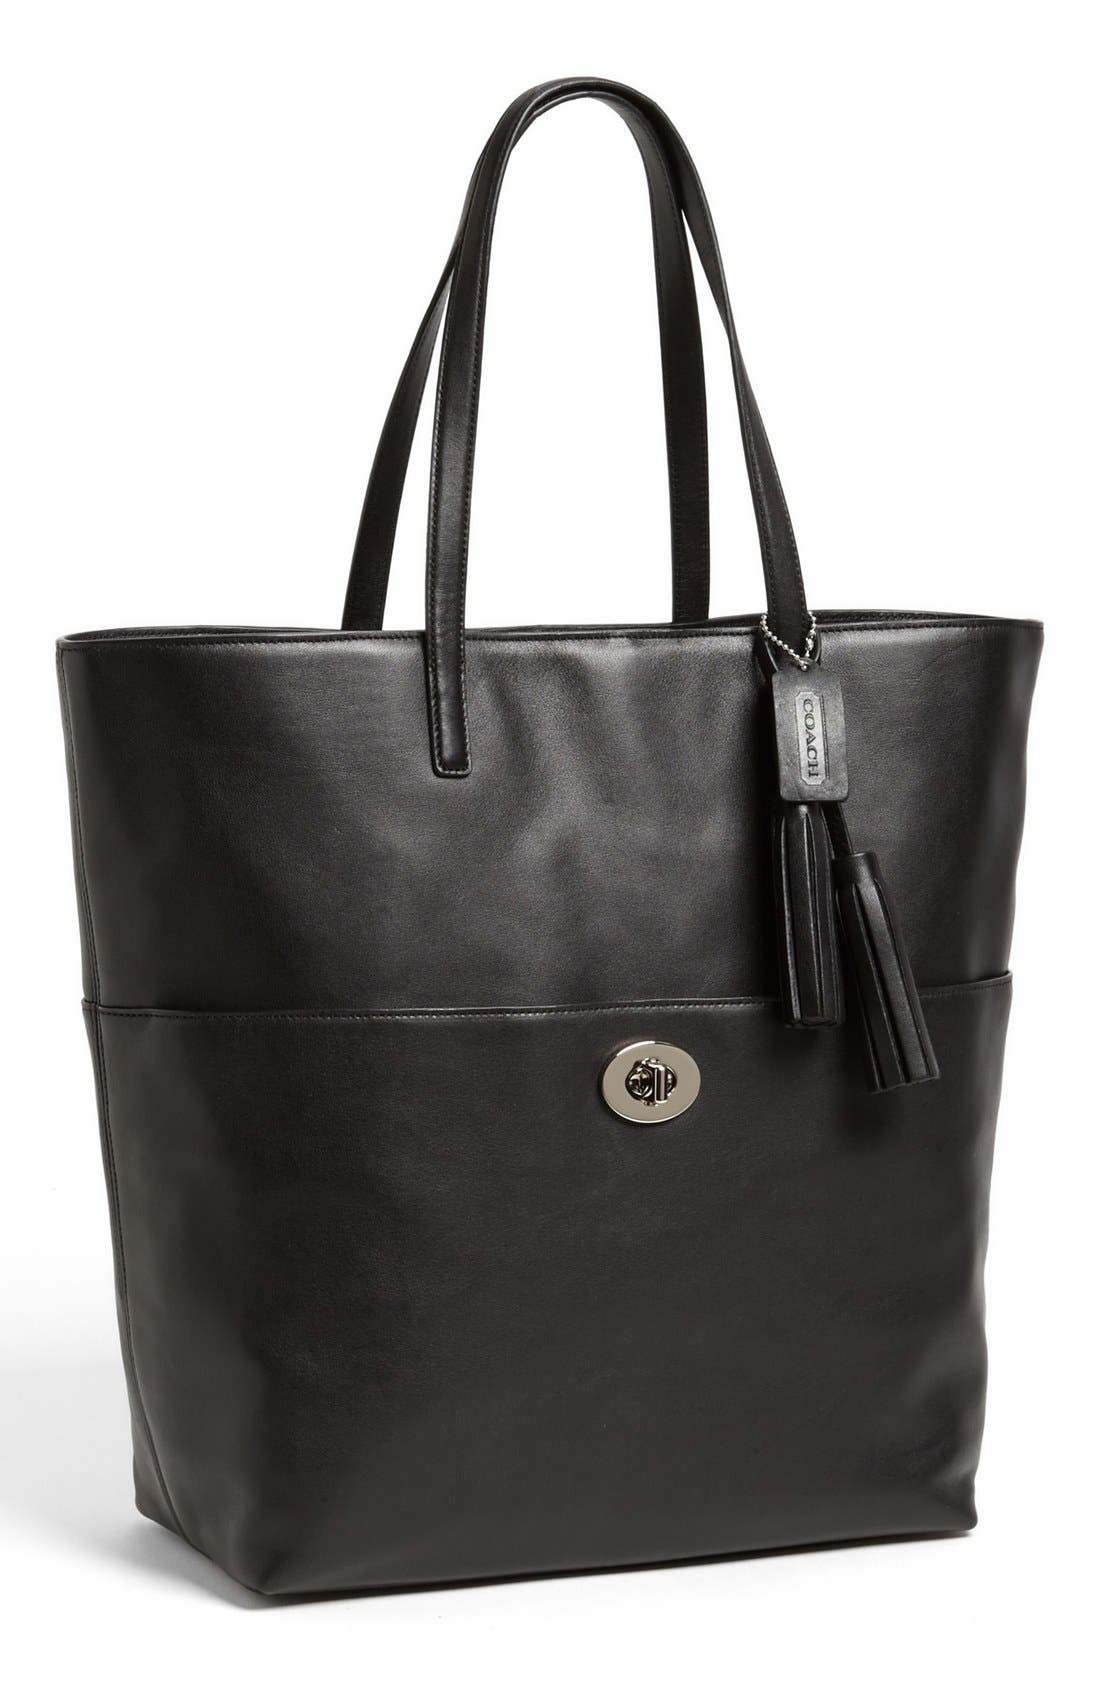 Alternate Image 1 Selected - COACH 'Legacy' Leather Tote